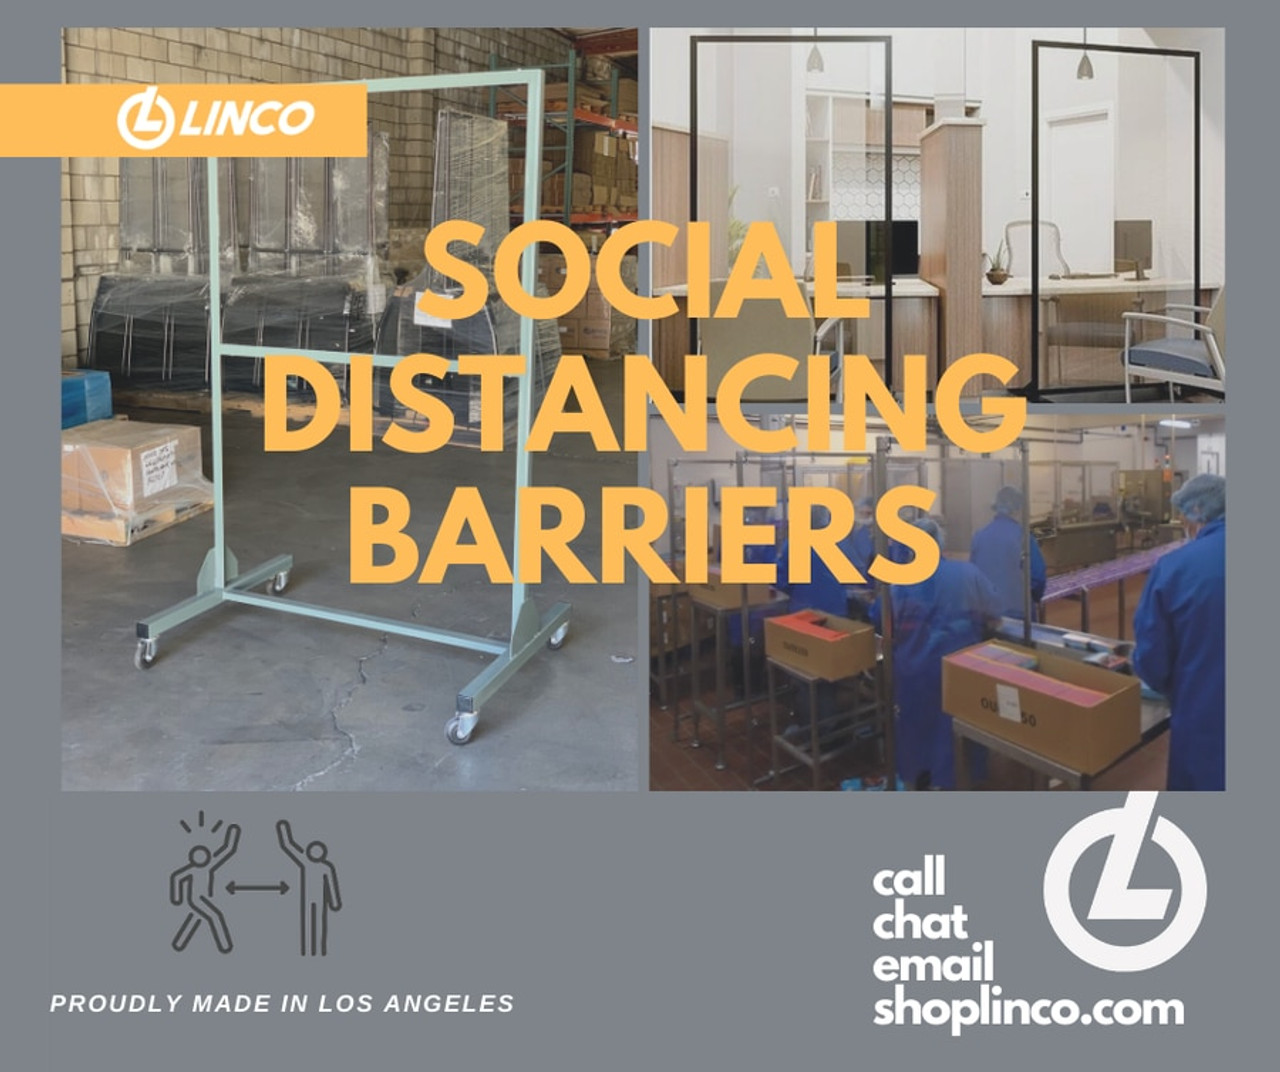 SOCIAL DISTANCING BARRIERS